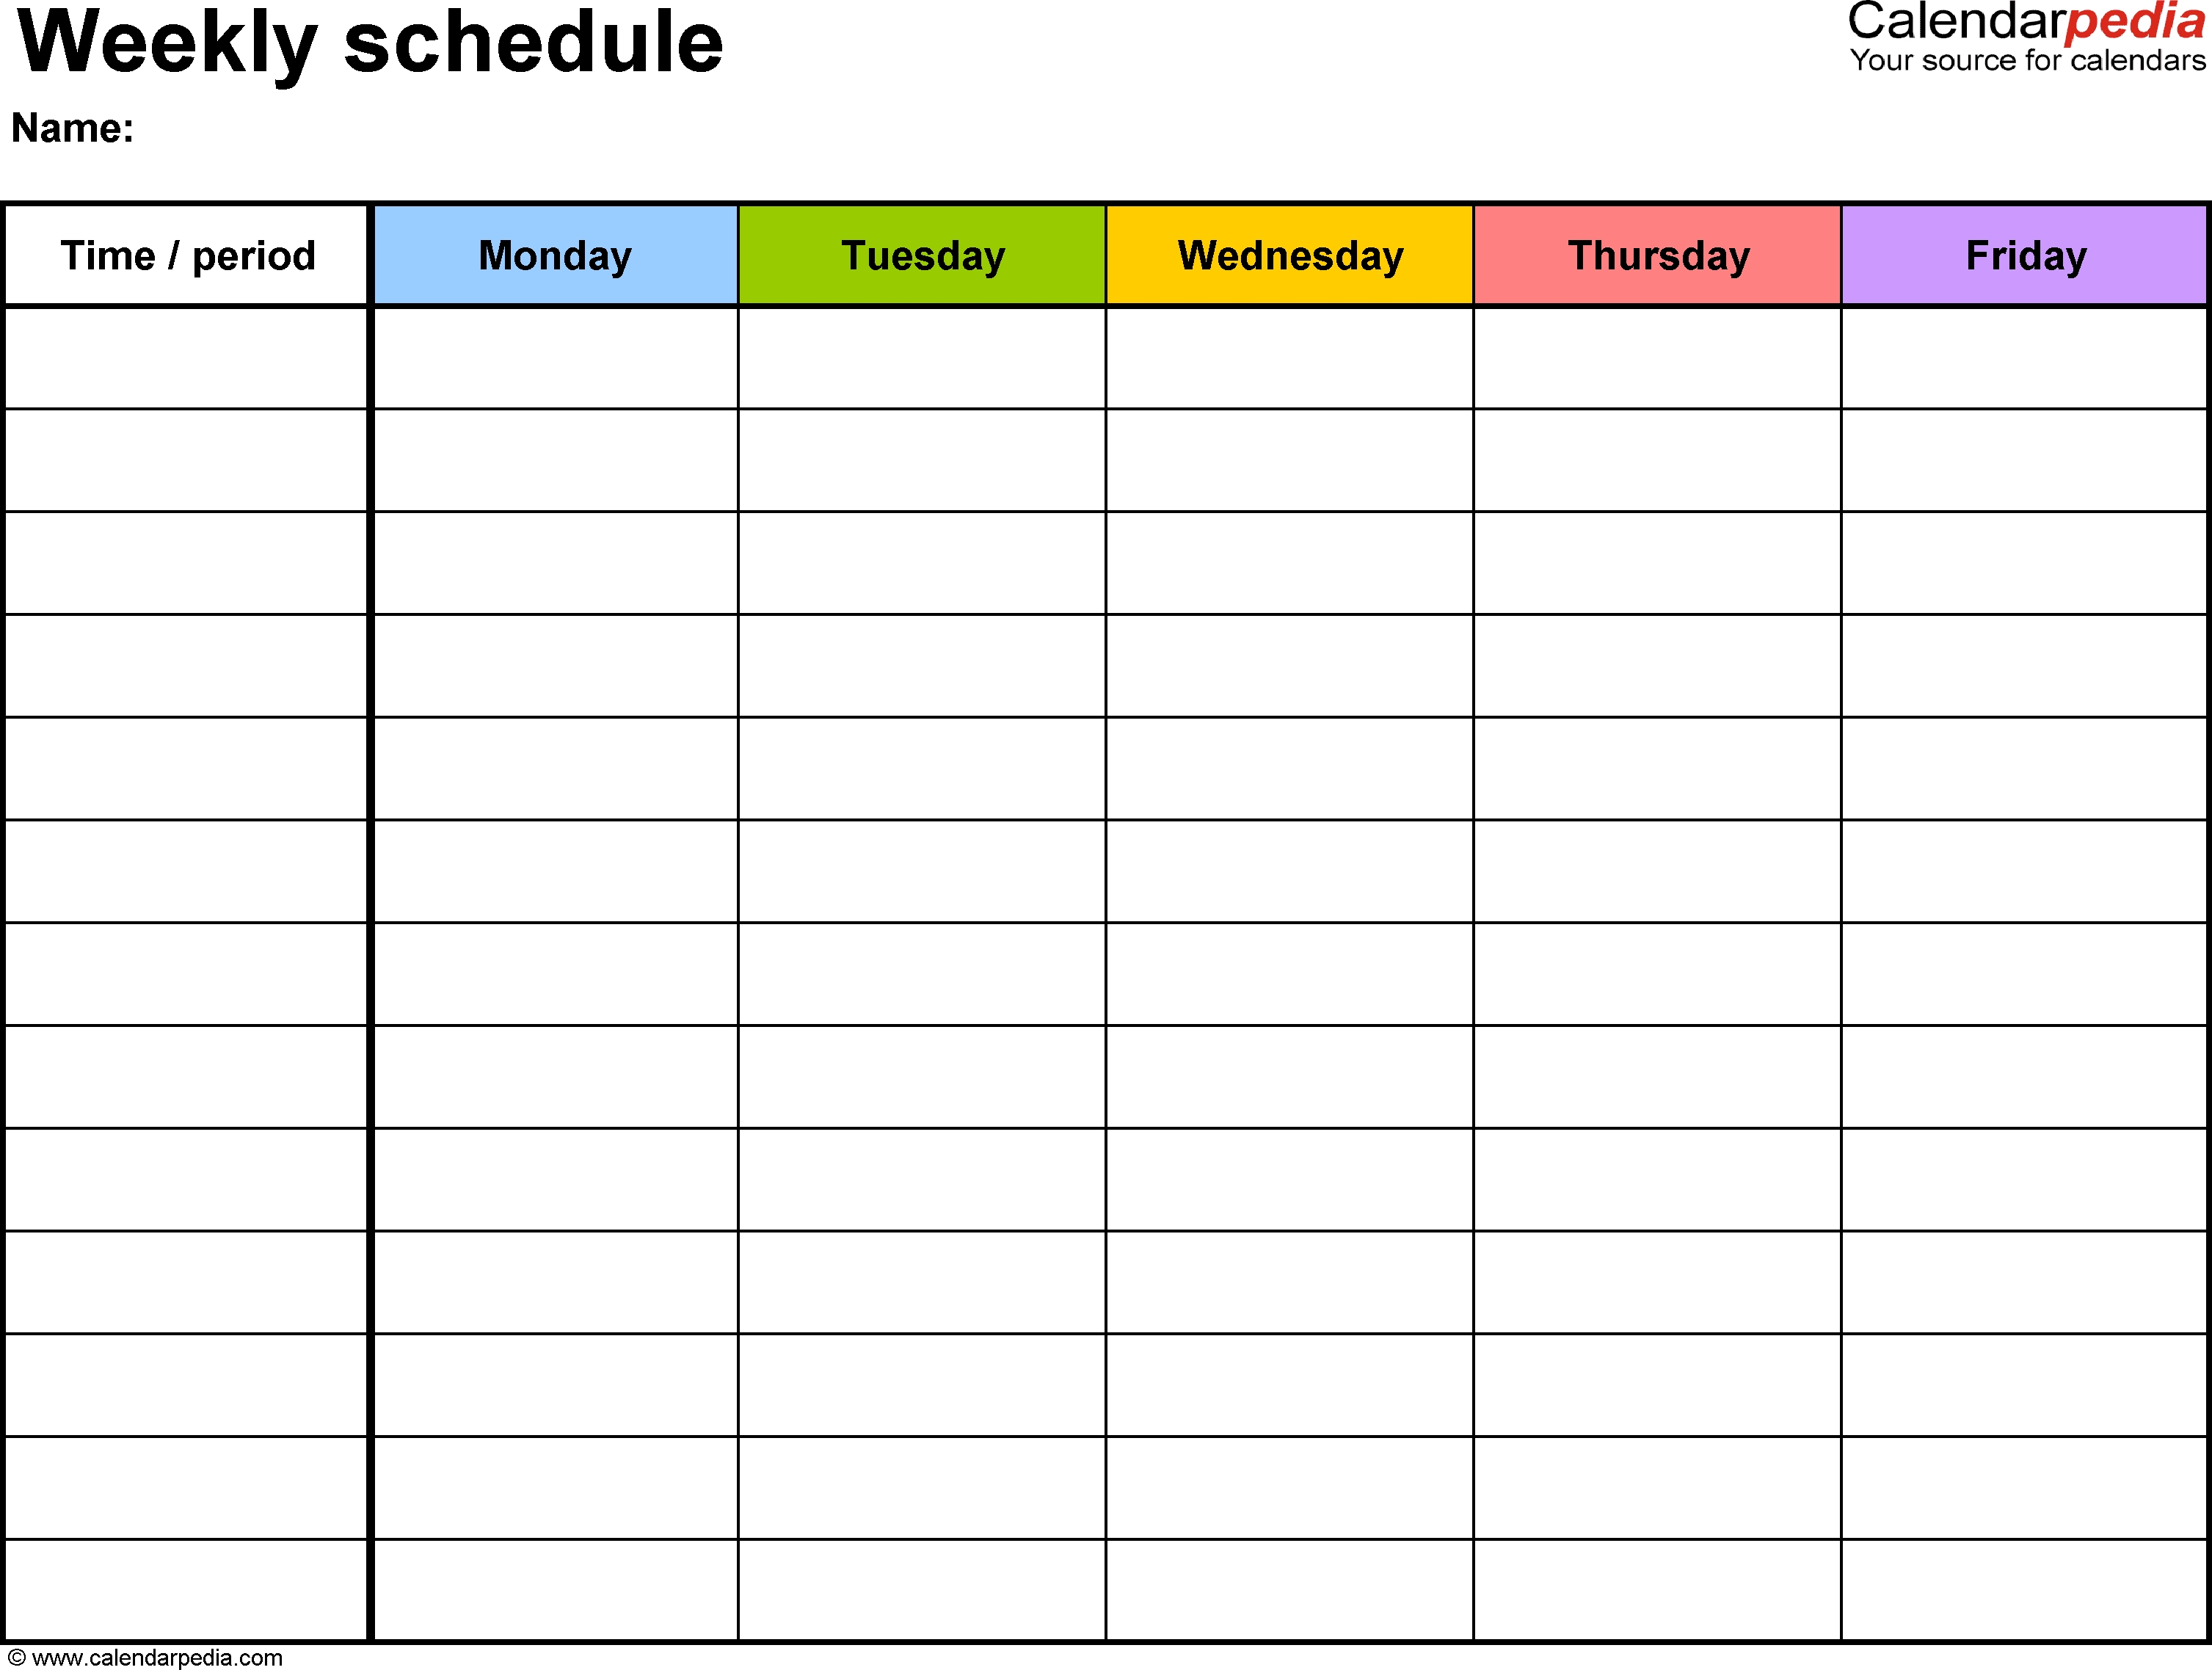 Free Weekly Schedule Templates For Word - 18 Templates pertaining to 7 Day Employee Schedule Template